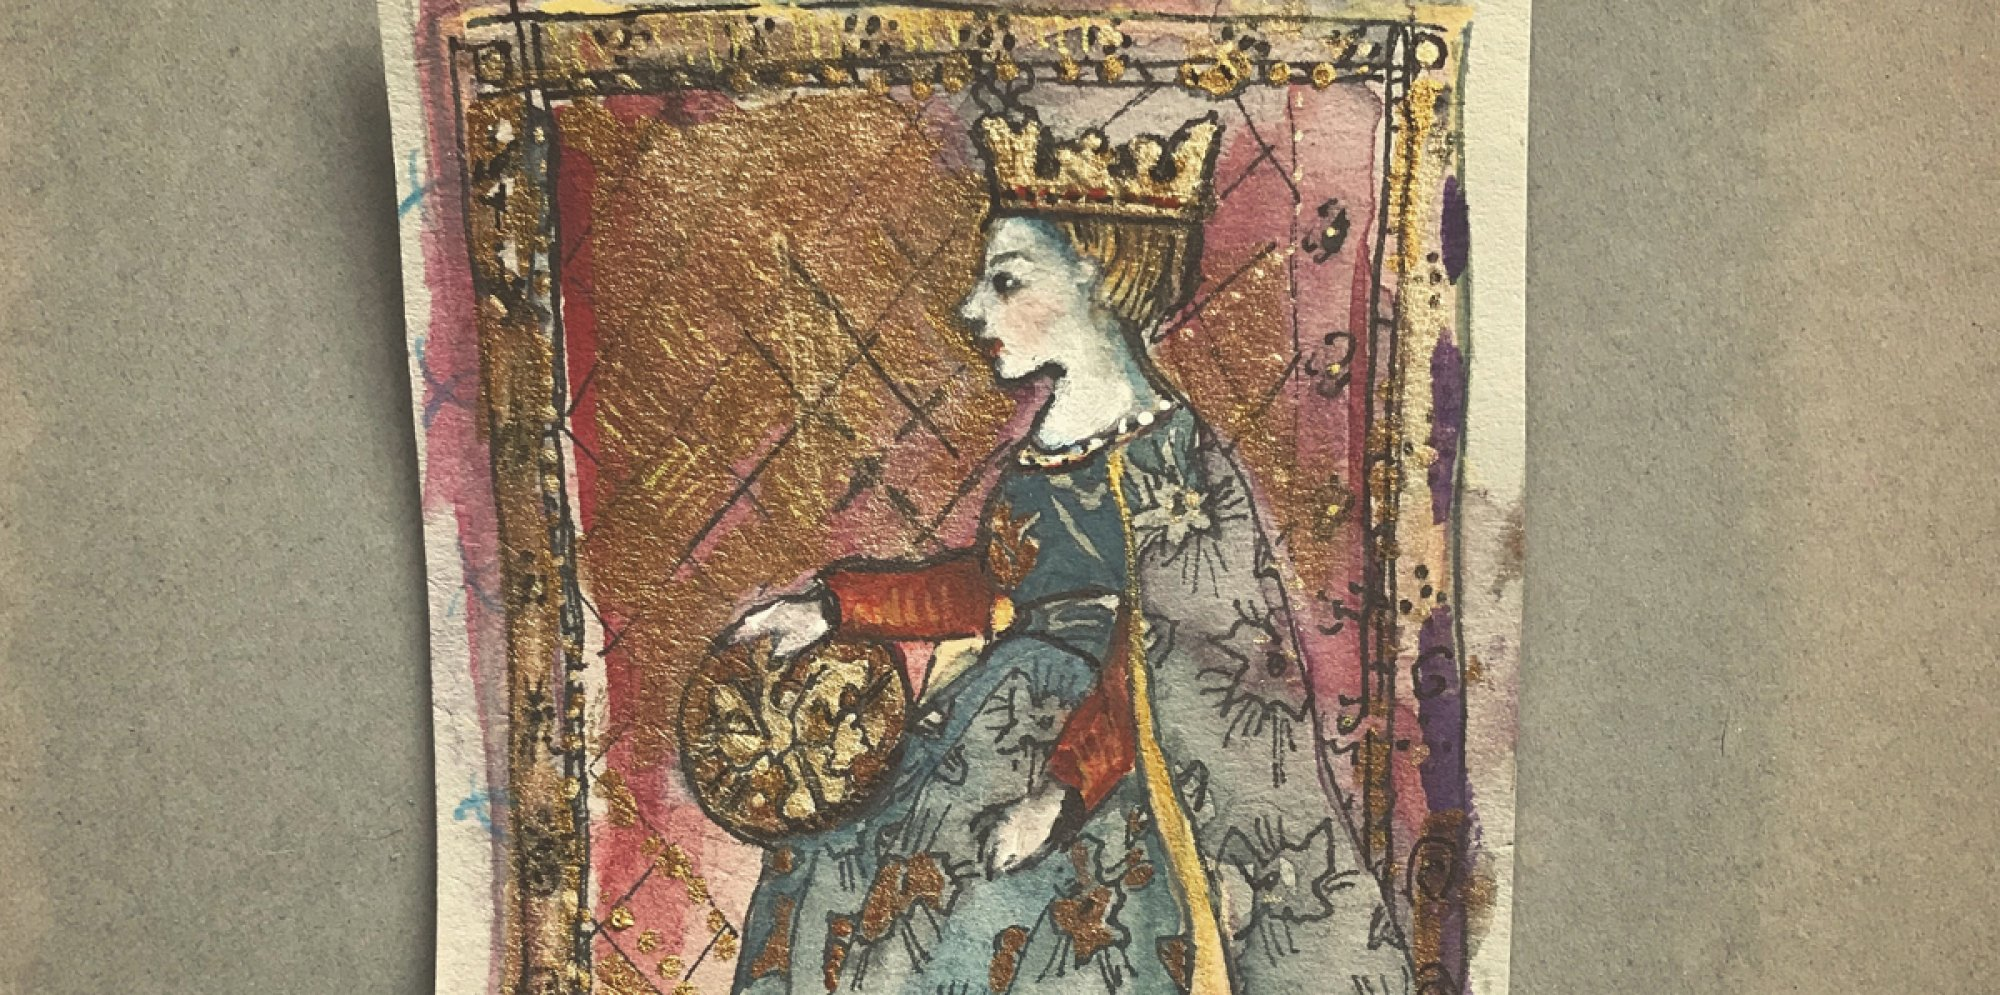 a yellowed paper card with a handpainted image of a queen sitting in profile. She wears a crown and an elaborate embroidered dress. A golden frame and panes embellish the image around her.